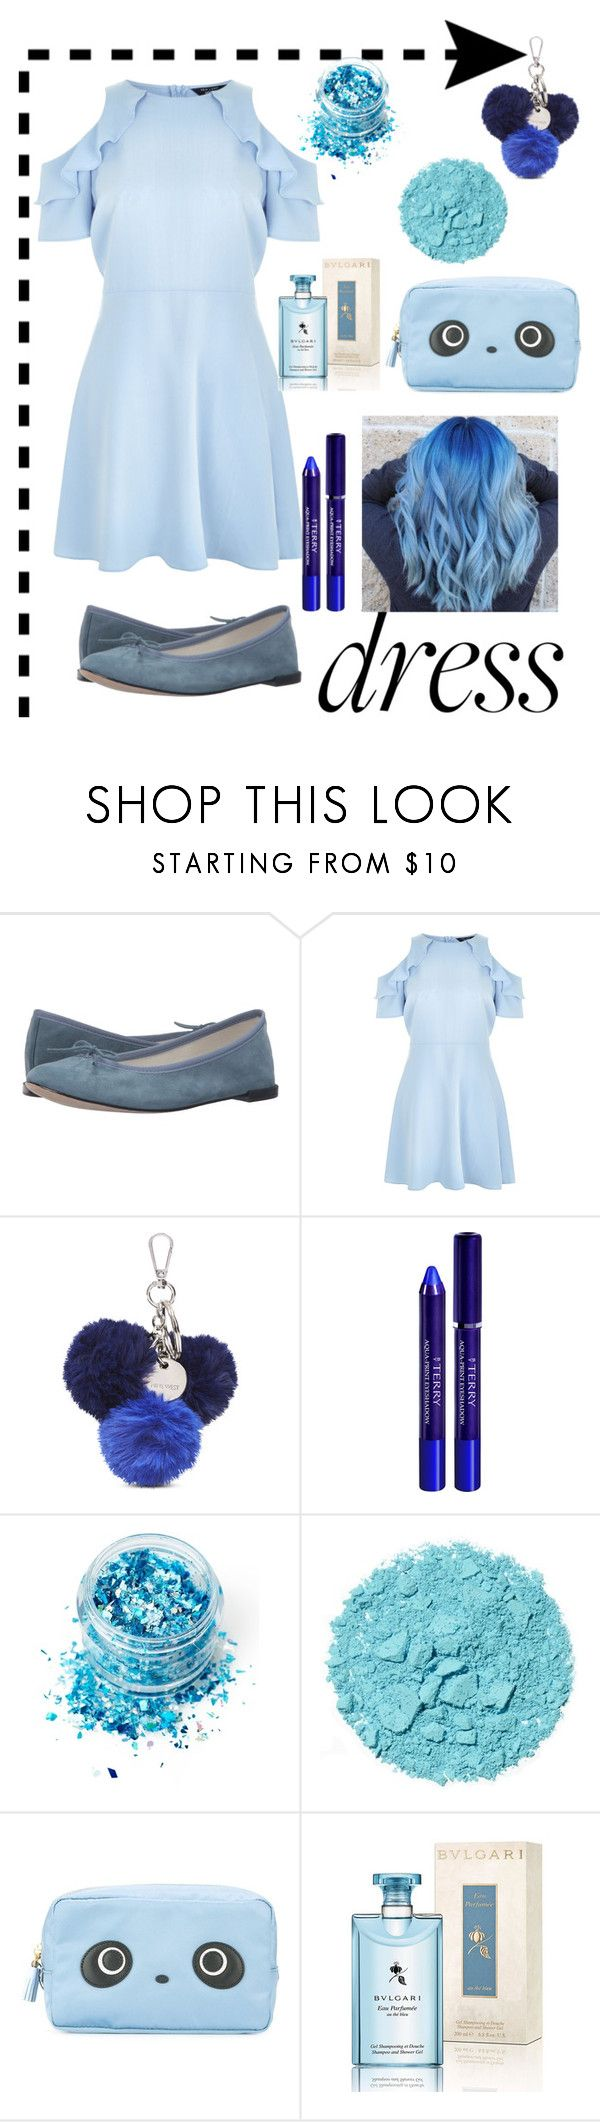 """🔛SUMMER"" by tinathequeen ❤ liked on Polyvore featuring Repetto, New Look, Nine West, By Terry, In Your Dreams, Anya Hindmarch and Bulgari"